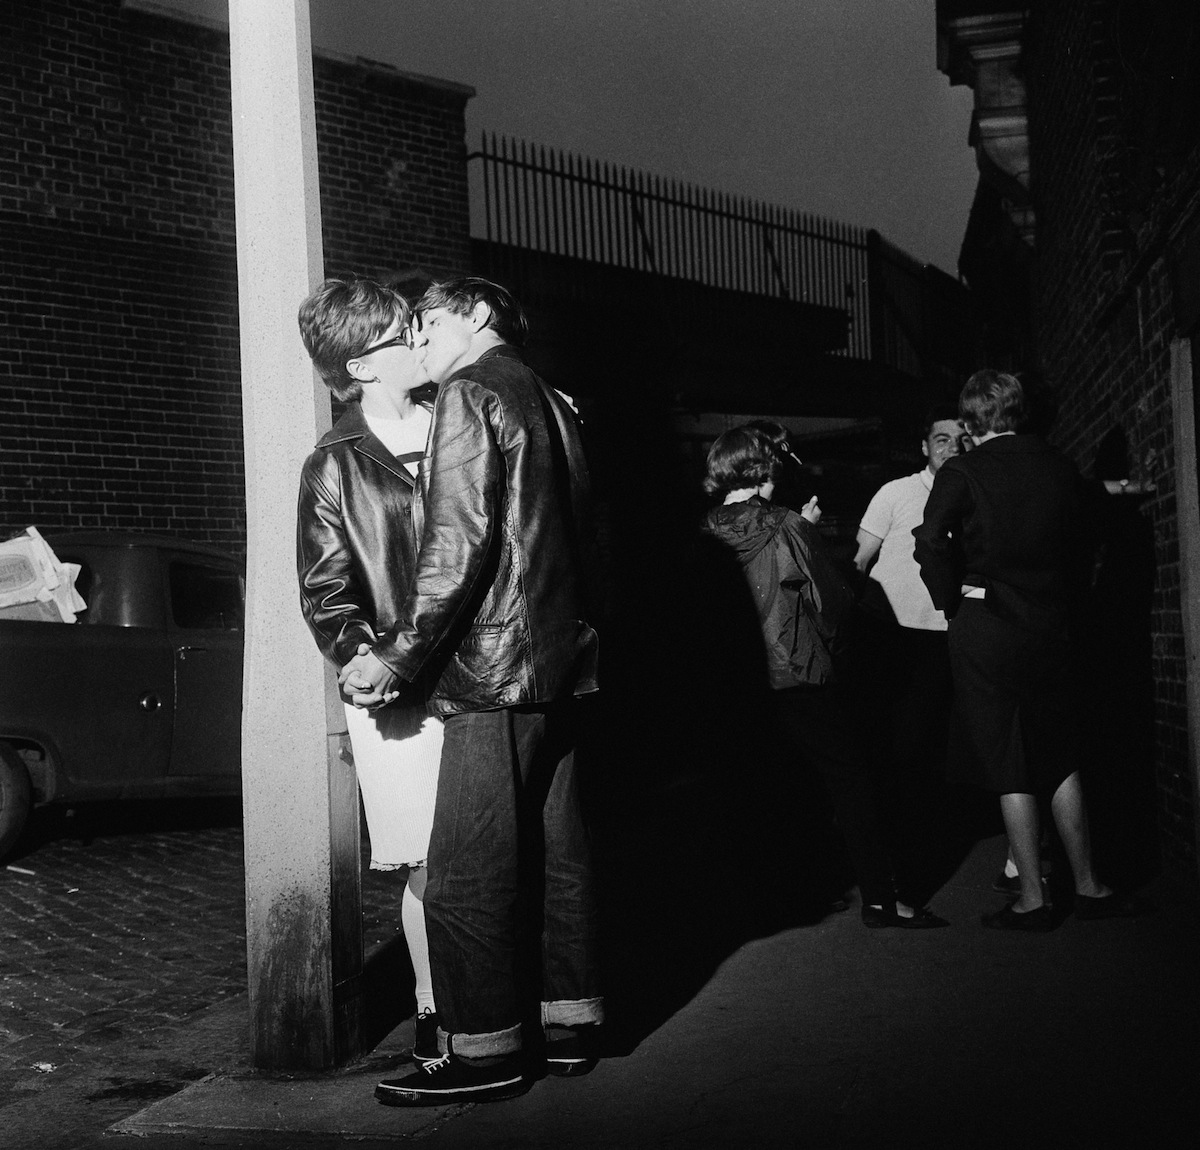 Young Mods kissing in the street in London, 1964